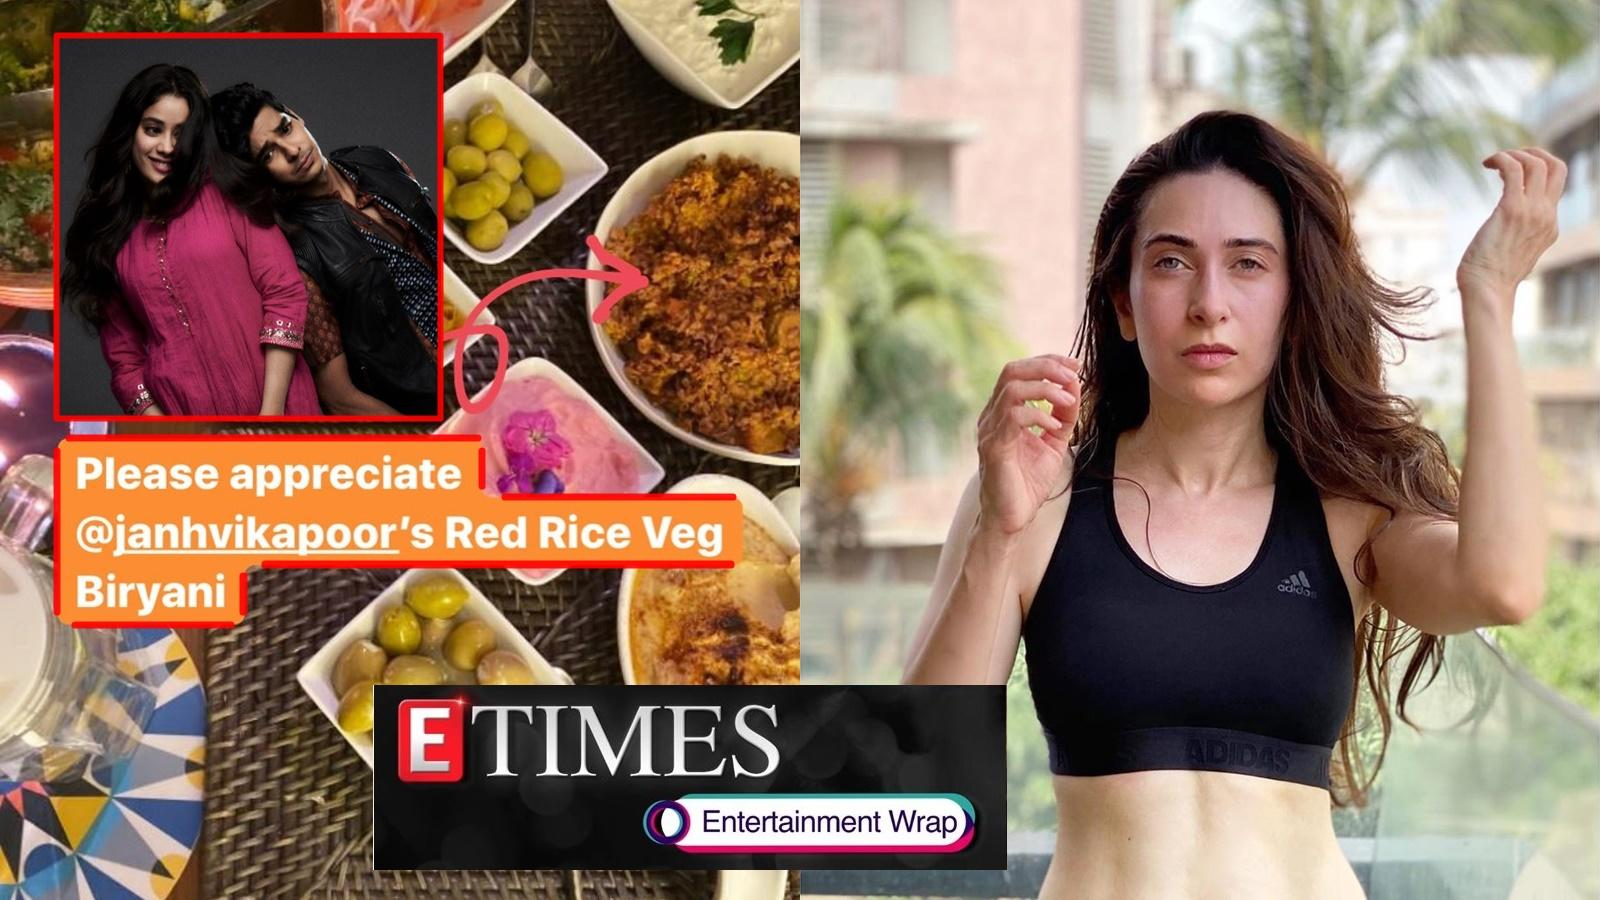 janhvi-kapoor-cooks-veg-biryani-for-ishaan-khatter-and-family-karisma-kapoor-flaunts-her-glam-avatar-in-sports-bra-and-more-